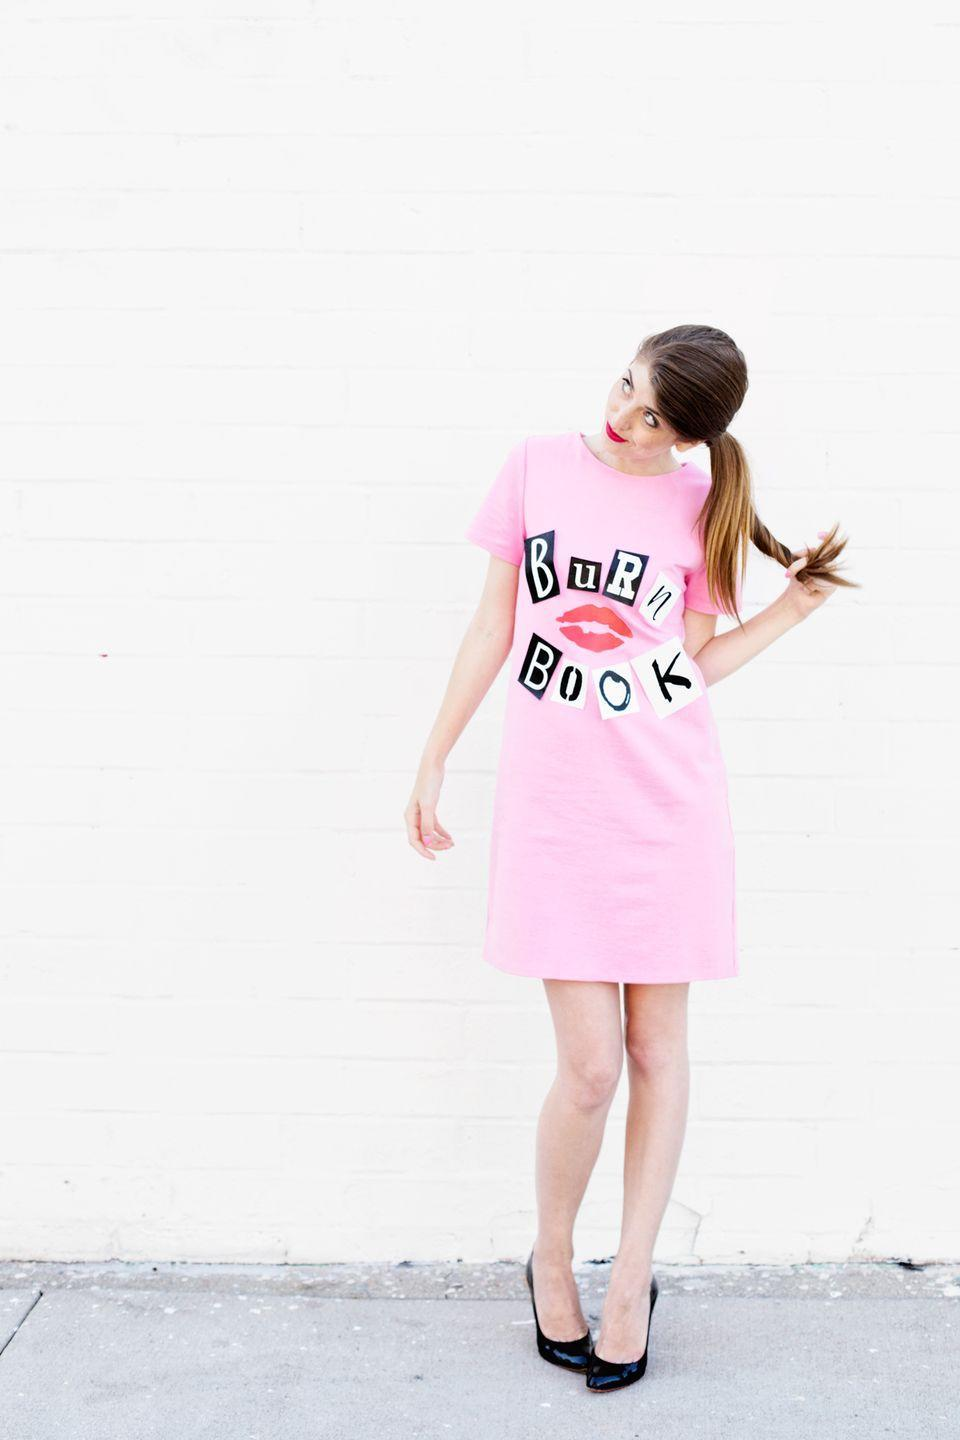 """<p>It doesn't get much easier than this costume inspired by <em>Mean Girls</em>. Just glue printed letters and a pair of lips to a pink T-shirt dress. </p><p><a class=""""link rapid-noclick-resp"""" href=""""https://studiodiy.com/diy-burn-book-costume/"""" rel=""""nofollow noopener"""" target=""""_blank"""" data-ylk=""""slk:GET THE TUTORIAL"""">GET THE TUTORIAL</a></p><p><a class=""""link rapid-noclick-resp"""" href=""""https://www.amazon.com/TOPONSKY-Womens-Casual-Sleeve-T-shirt/dp/B072DYNKMQ?tag=syn-yahoo-20&ascsubtag=%5Bartid%7C10072.g.33547559%5Bsrc%7Cyahoo-us"""" rel=""""nofollow noopener"""" target=""""_blank"""" data-ylk=""""slk:SHOP DRESS"""">SHOP DRESS</a></p>"""